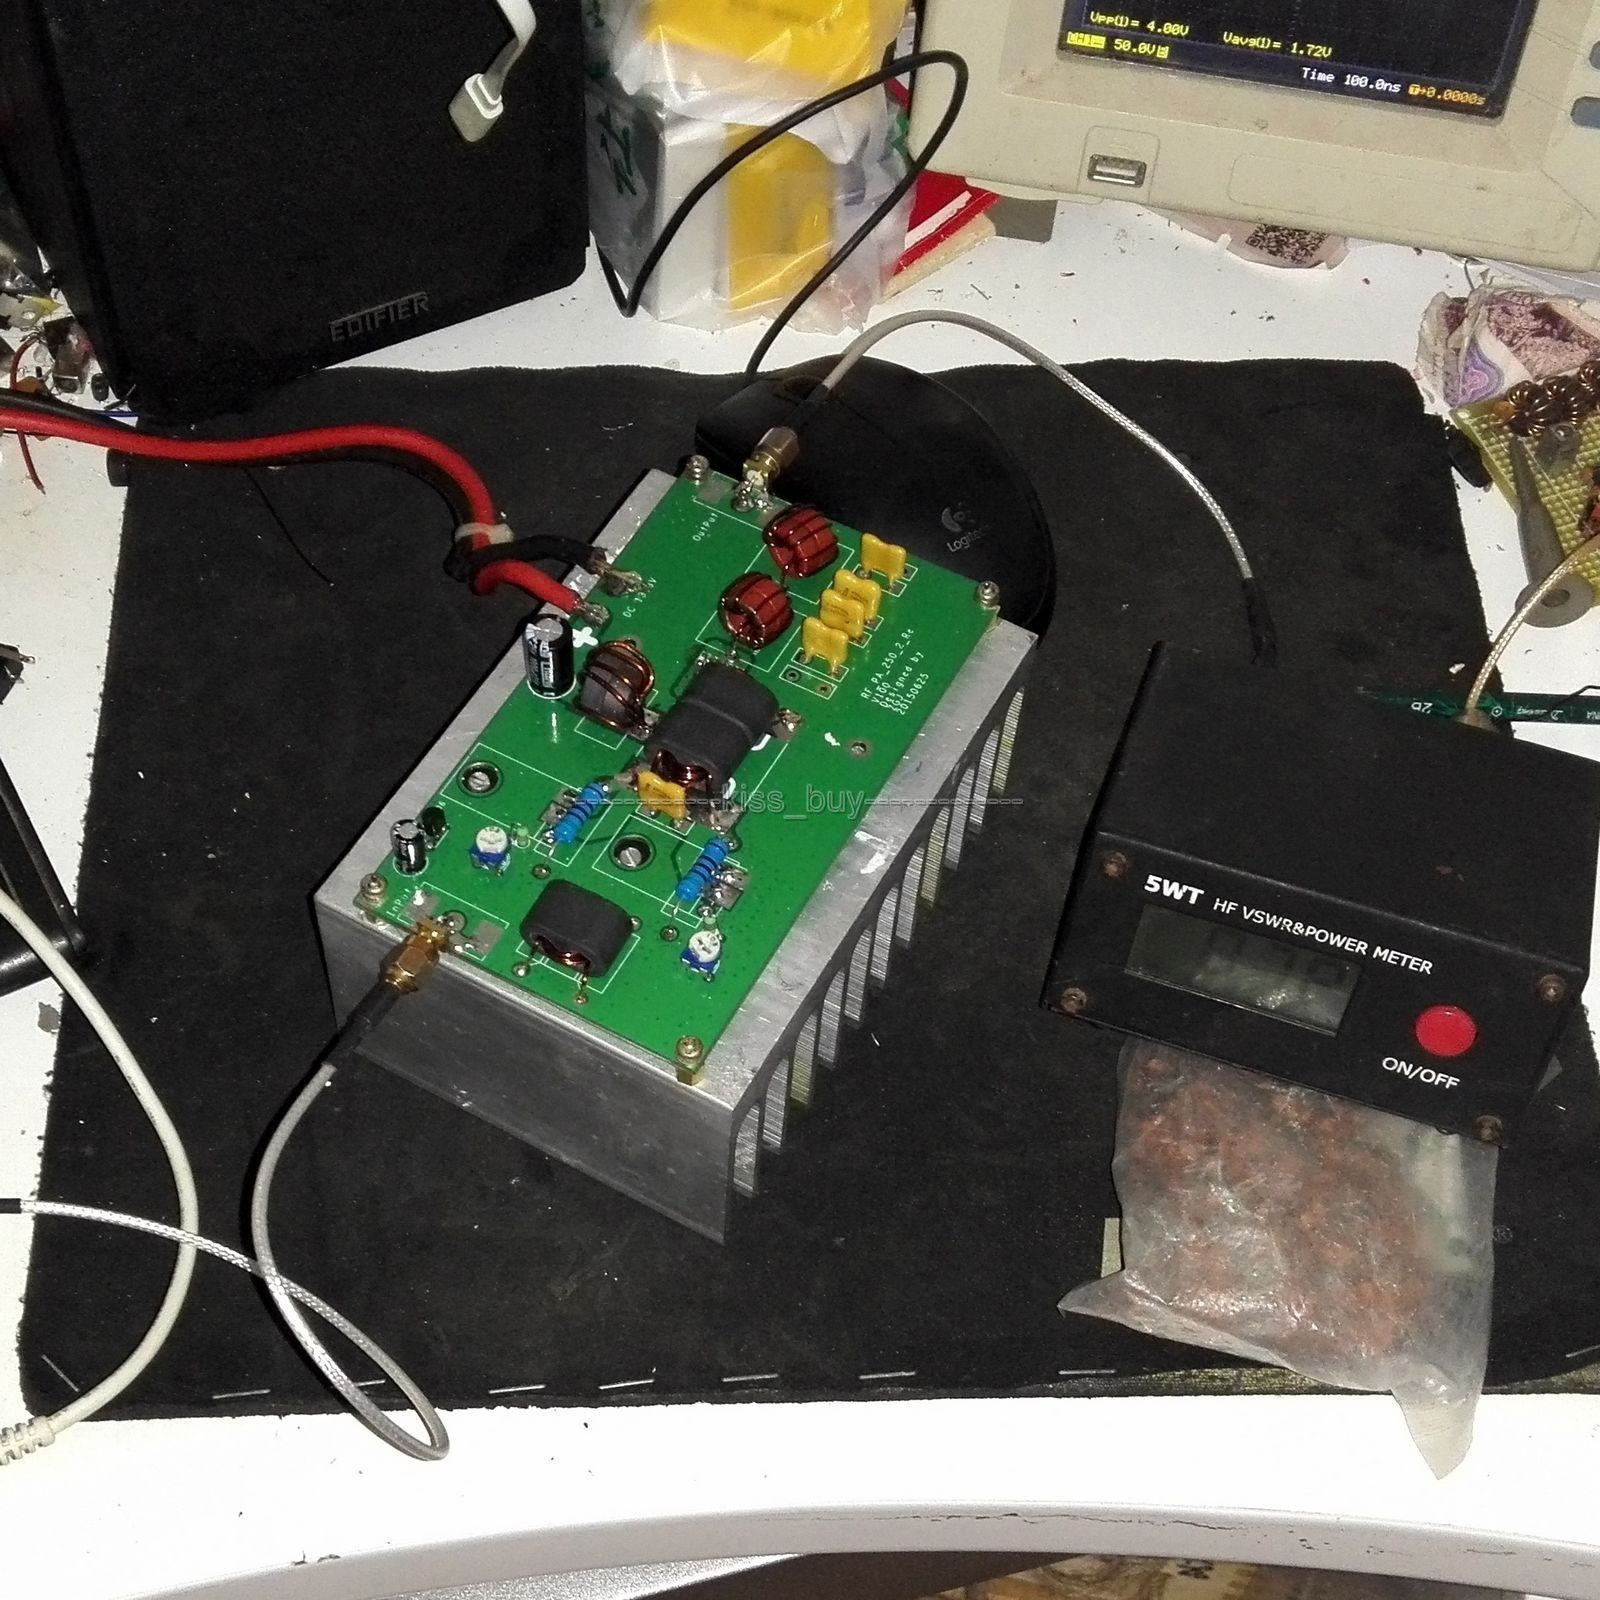 Best ideas about DIY Radio Kit . Save or Pin High Frequency 100W linear power amplifier DIY KITS for Now.